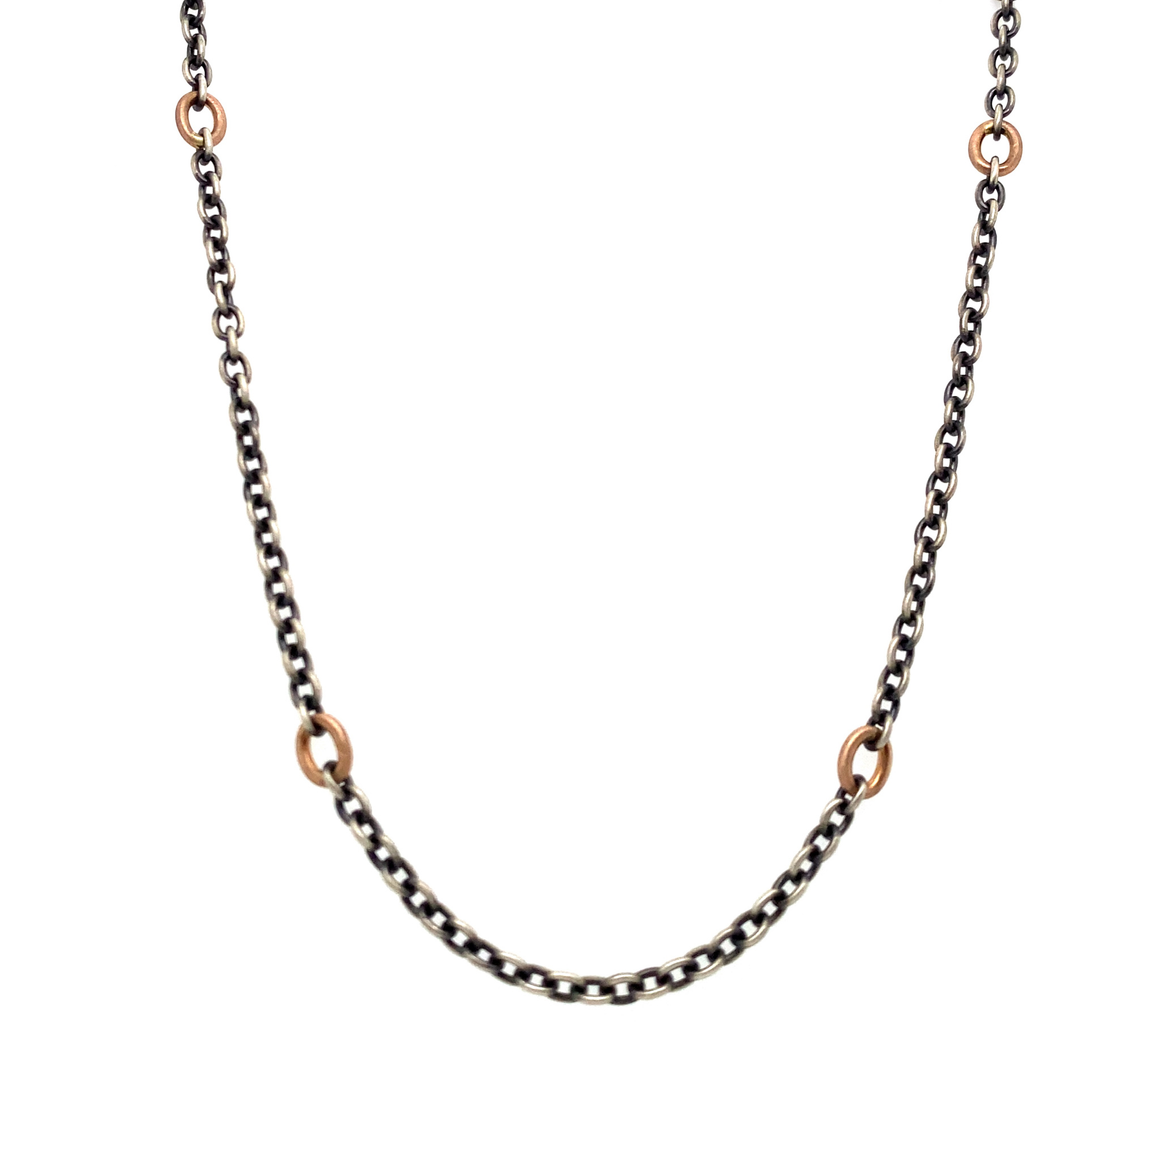 Oxidized Sterling Silver and Rose Gold Link Chain - Lesley Ann Jewels